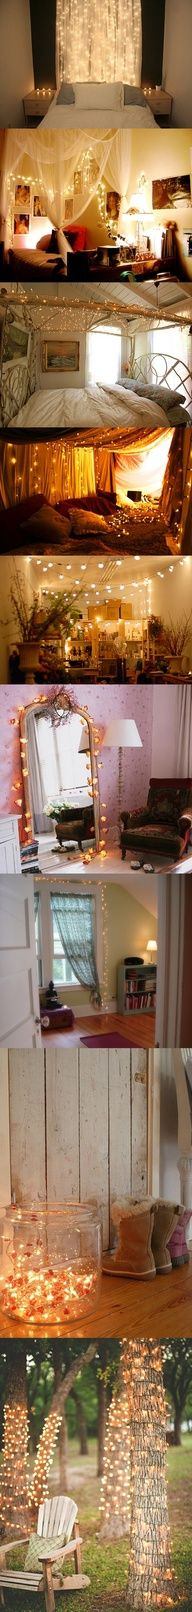 Different ways to use Christmas lights in your home year round.